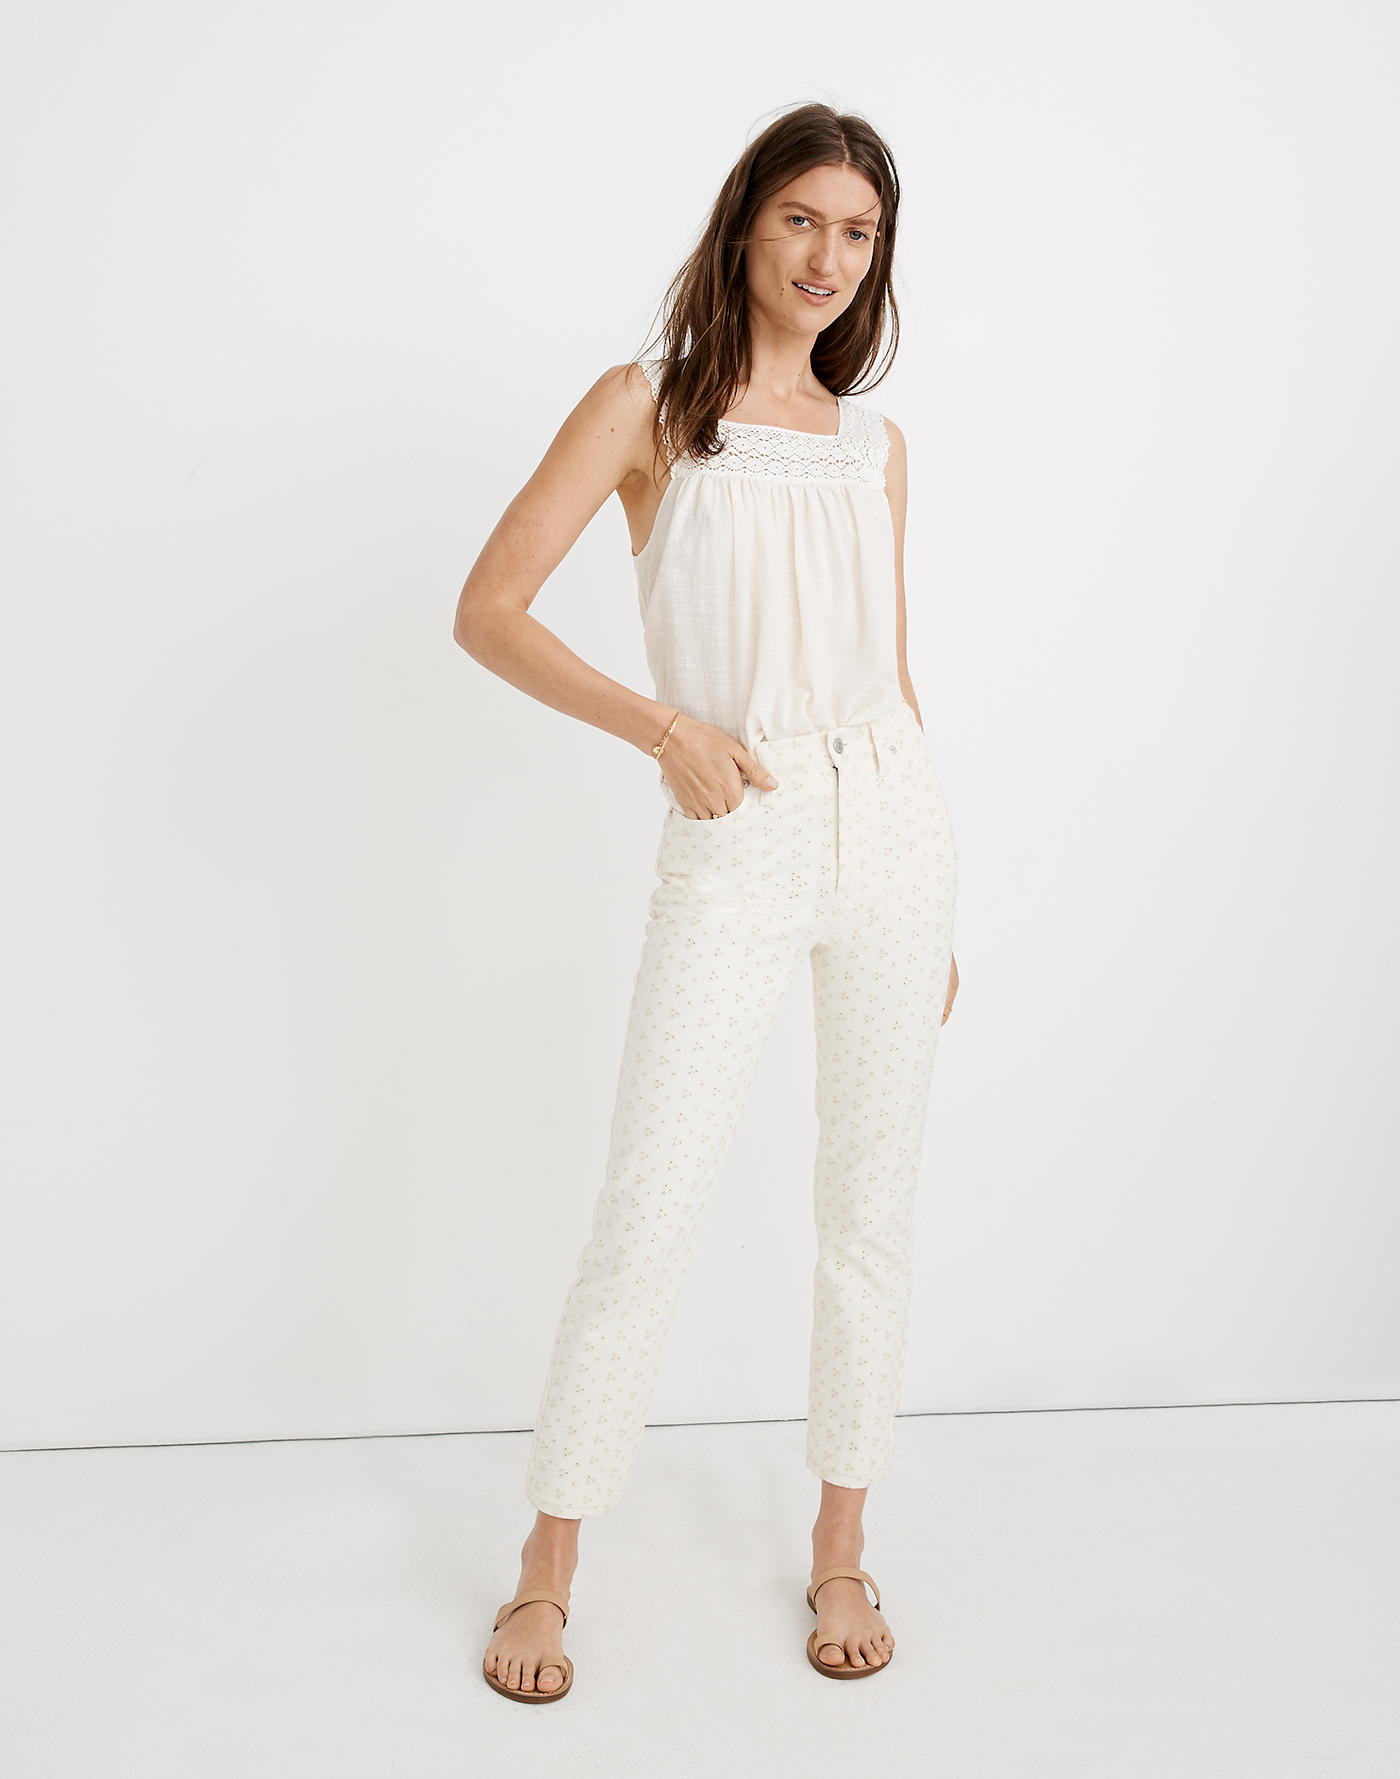 Embroidered Eyelet Jean